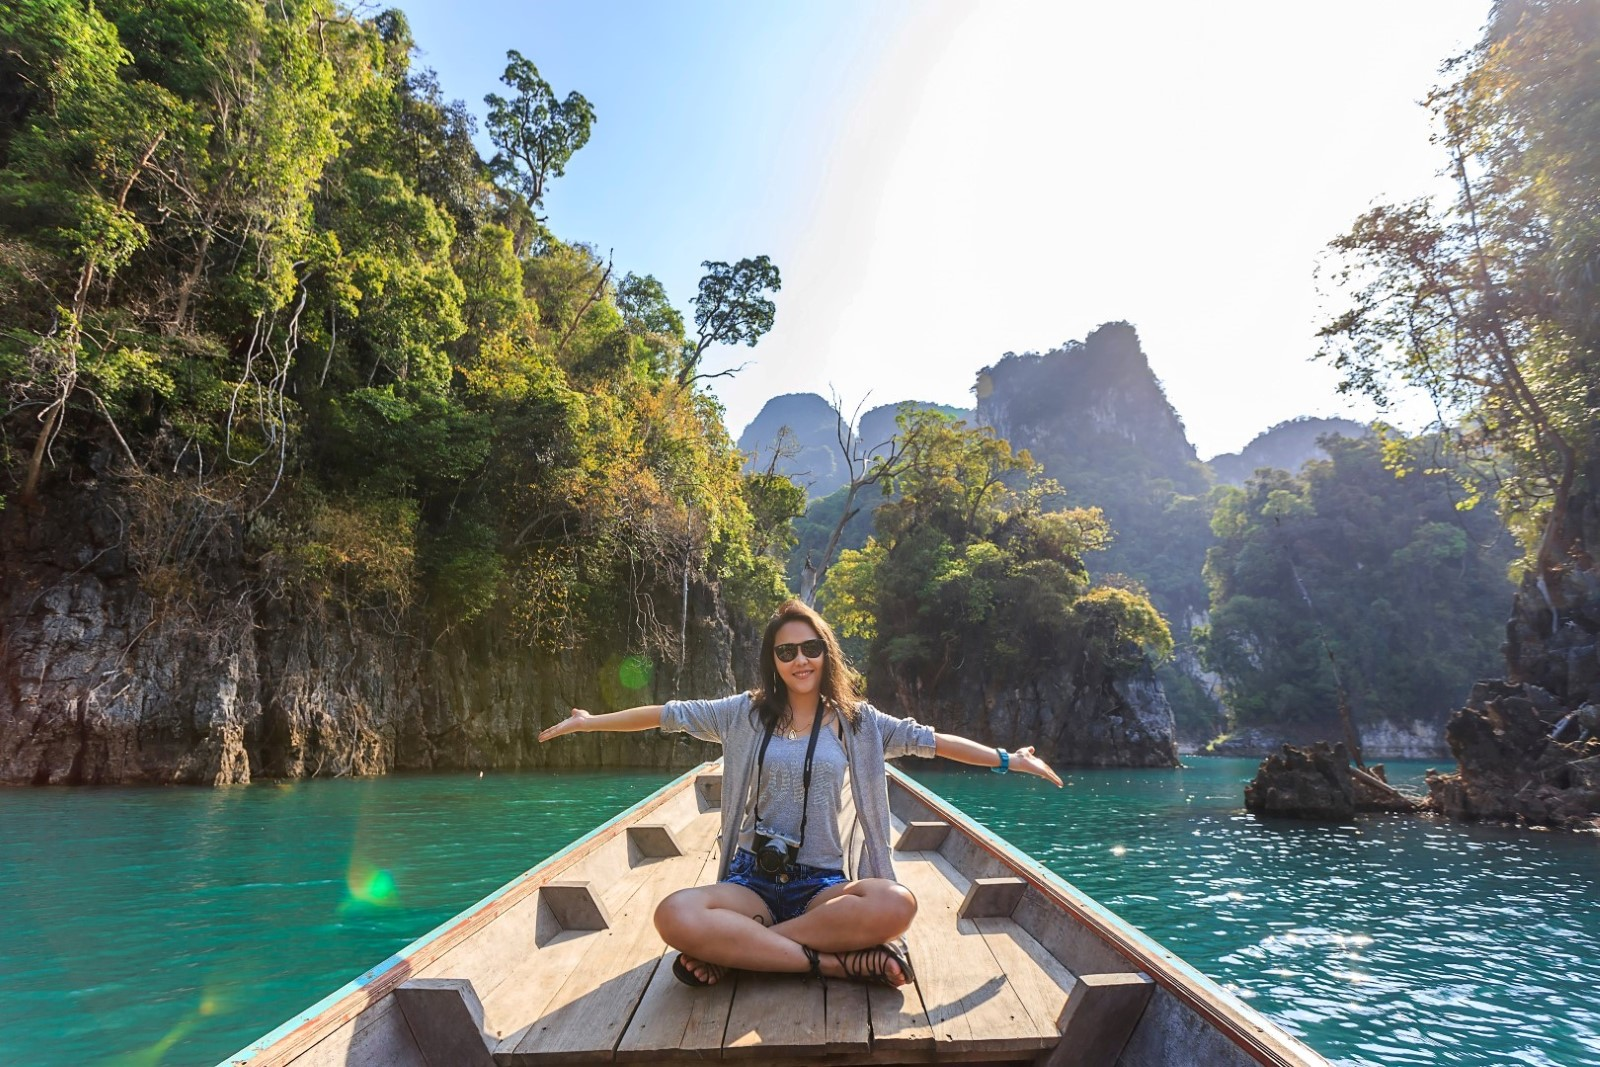 Top 7 Packing List Items for Female Travelers